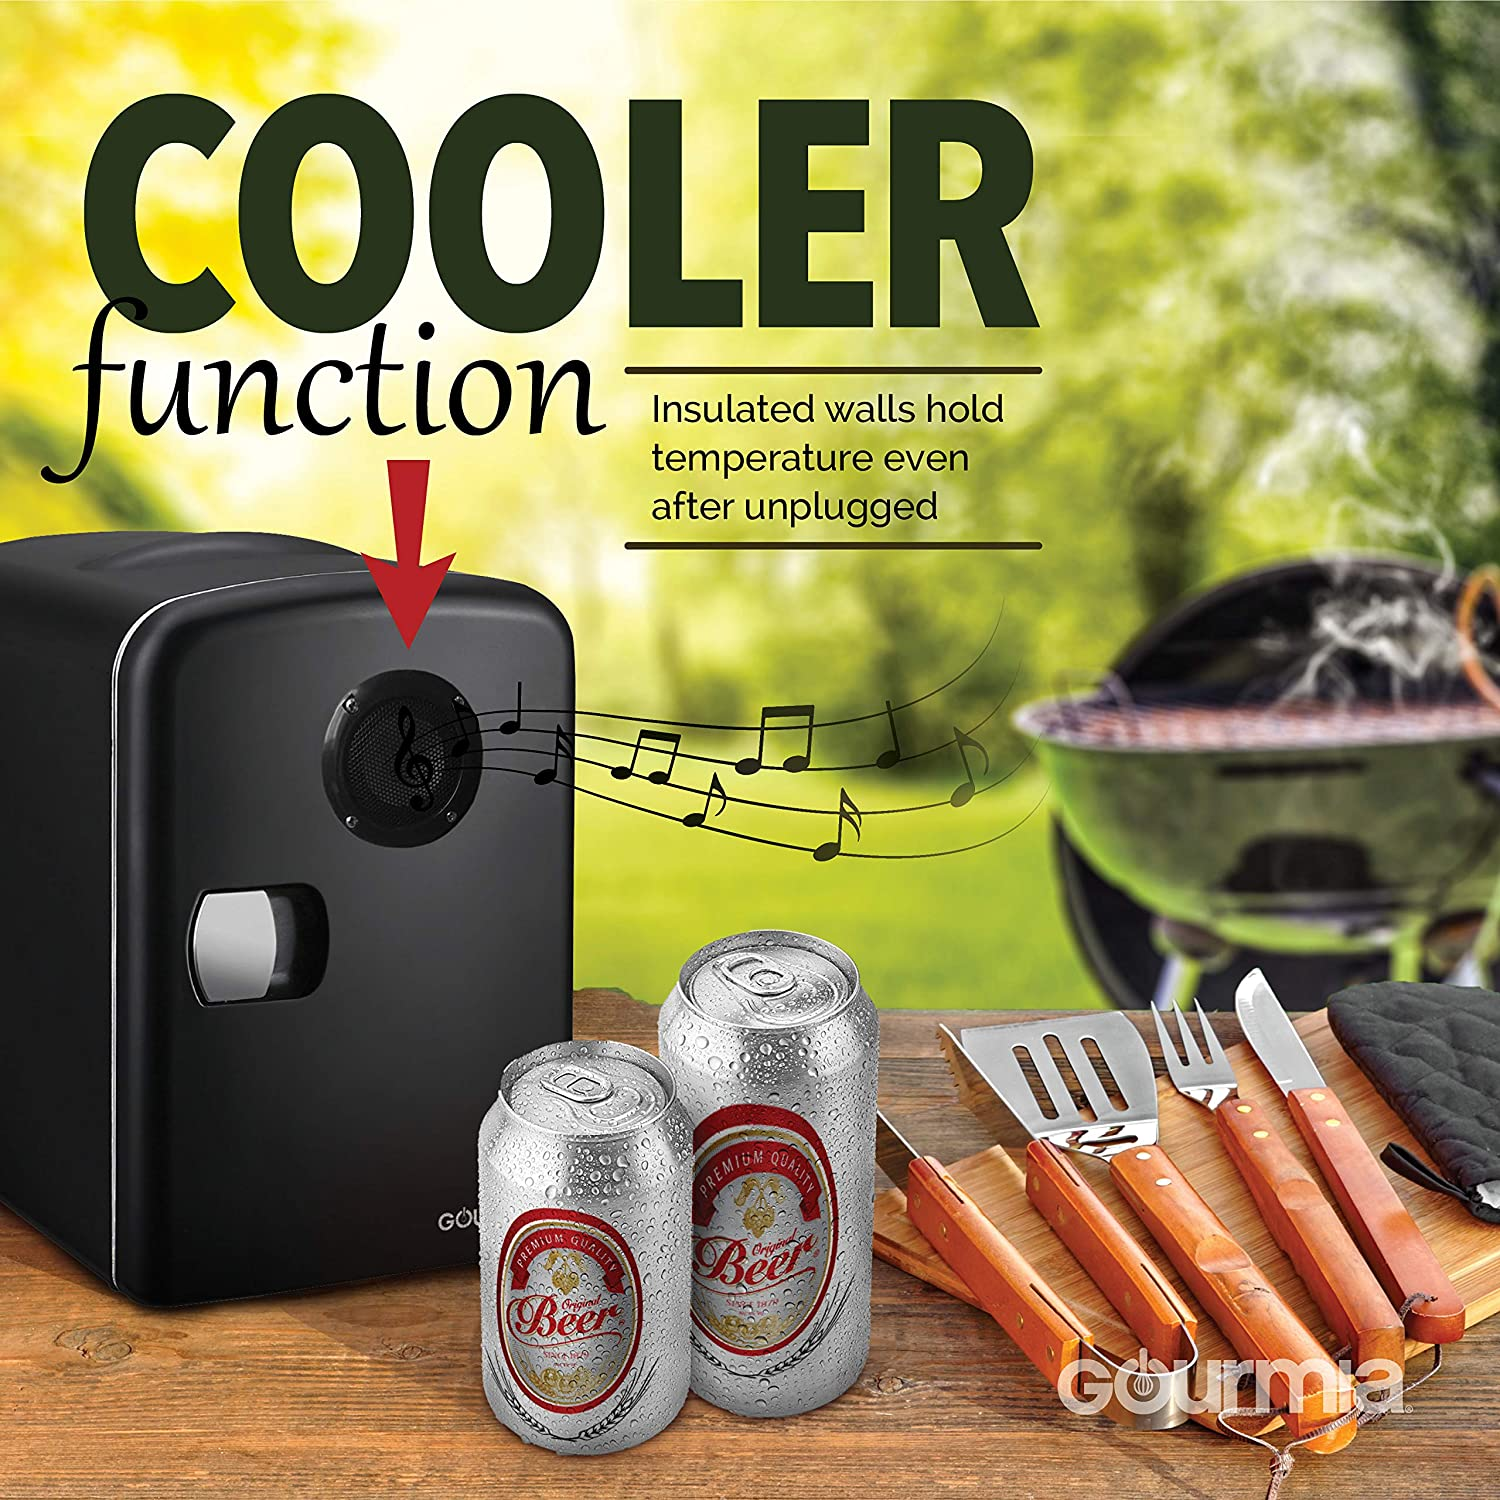 Gourmia GMF668 Thermoelectric Mini Fridge Cooler and Warmer - With Bluetooth Speaker - 4 Liter/6 Can - For Home, Office, Car, Dorm or Boat